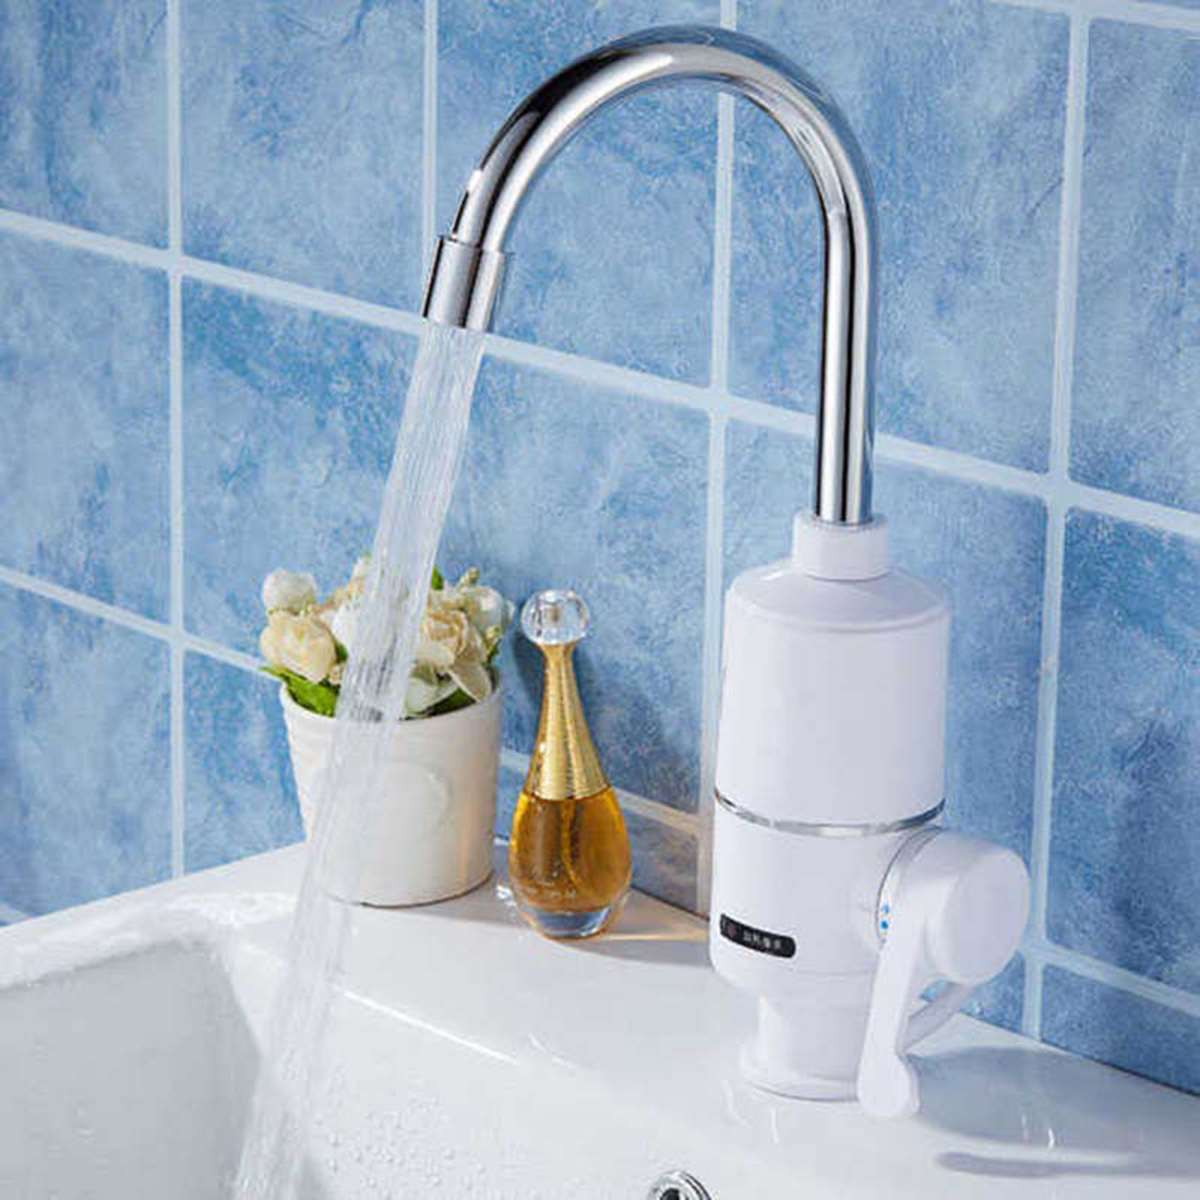 220V 3000w Instant Electric Water Heater Tap Rotatable Hot Water Faucet Heater Cold Heating Faucet Tankless Rapid Heater